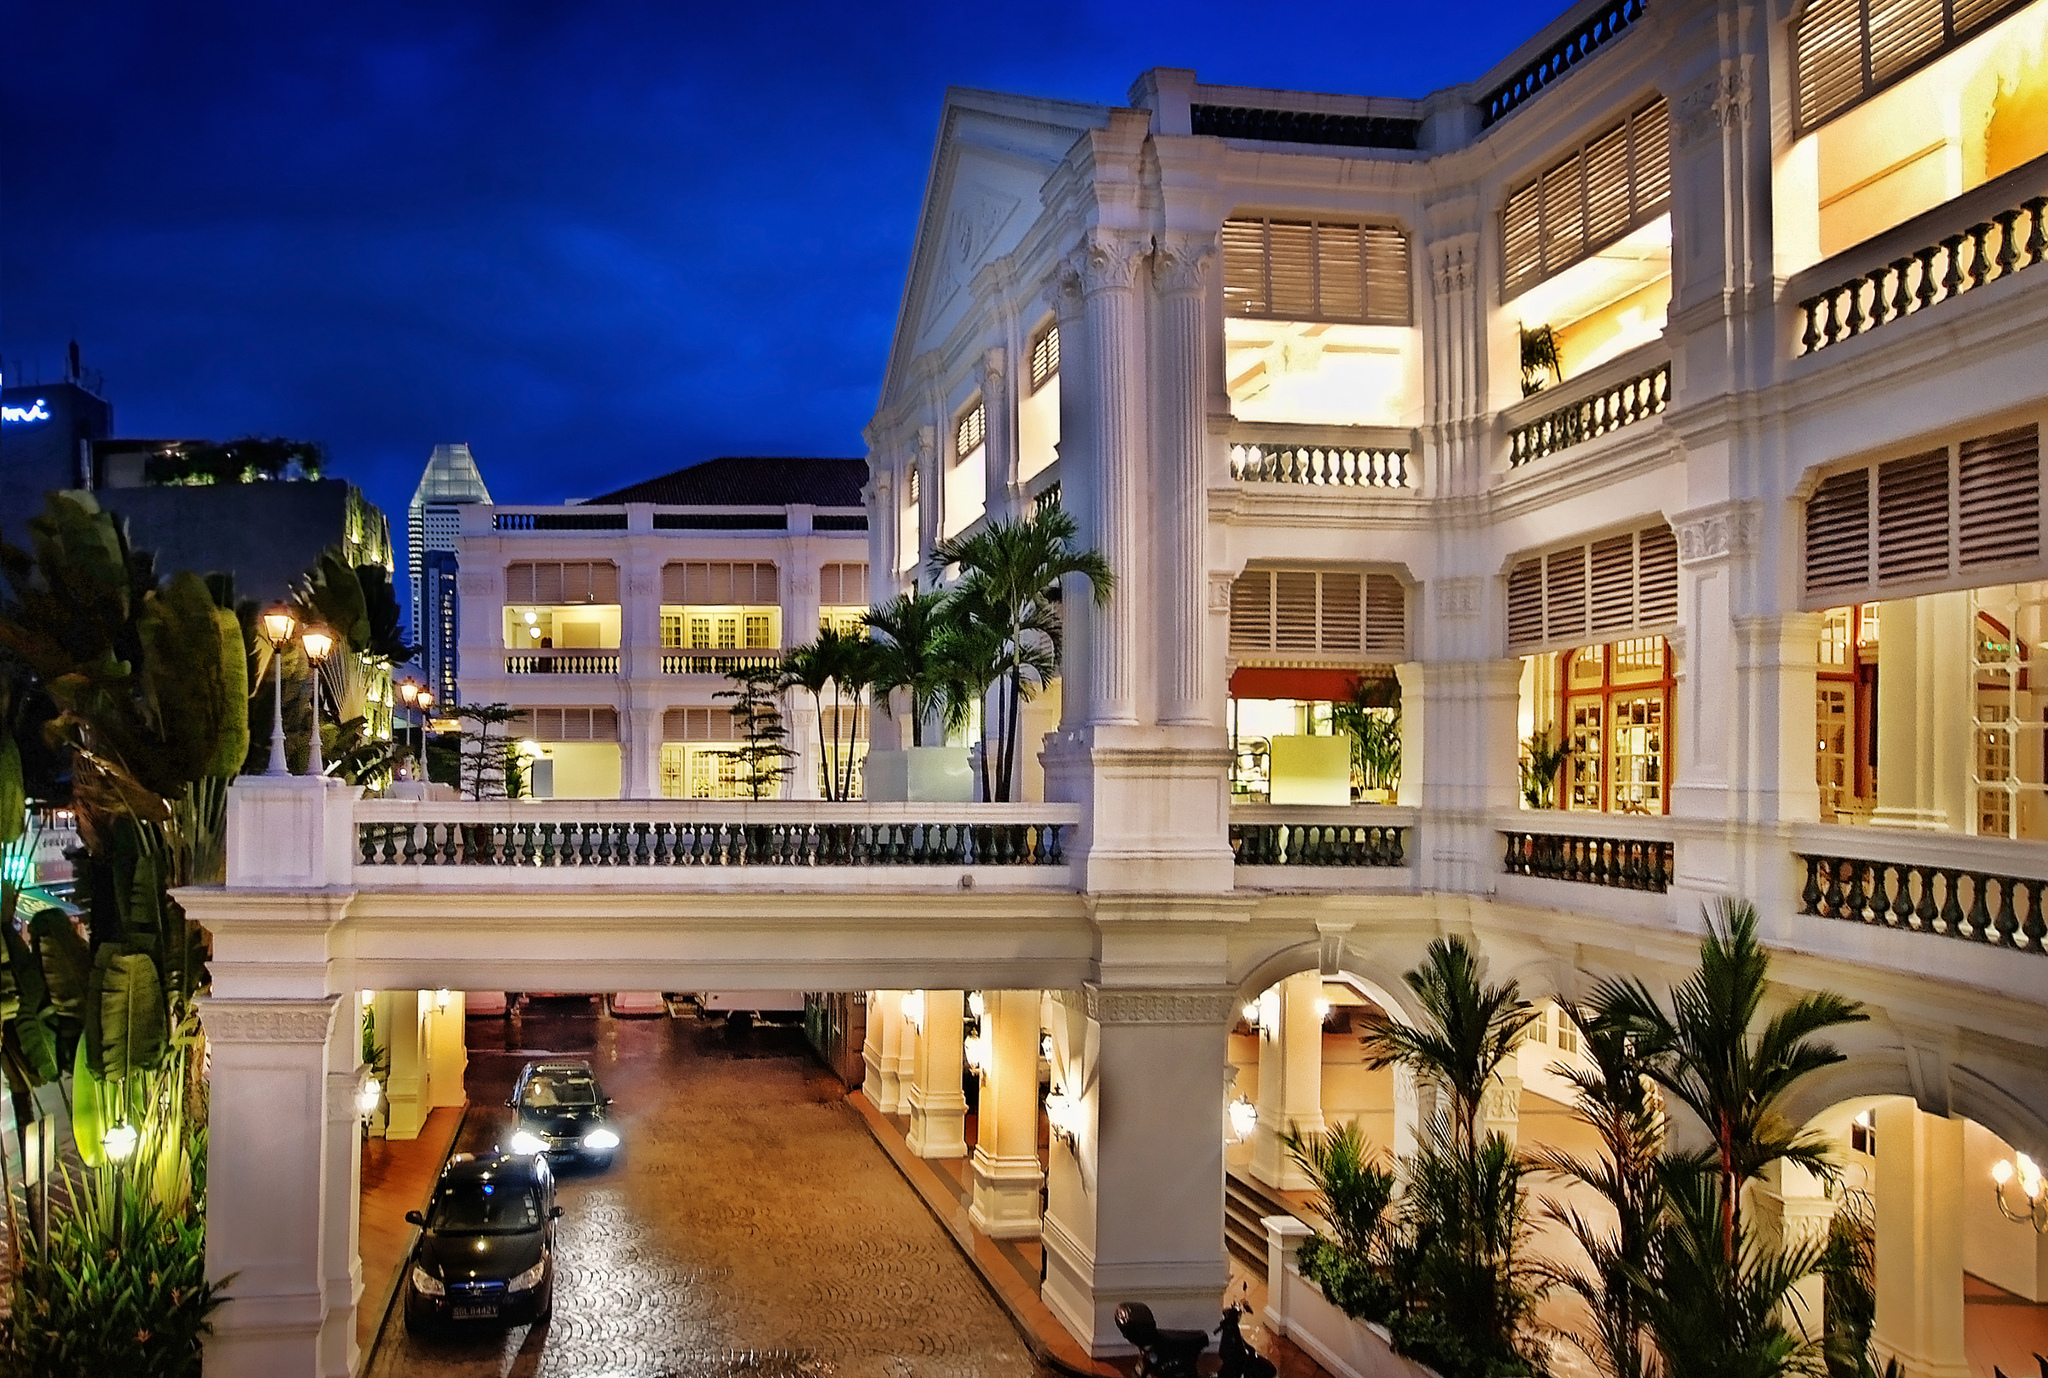 Raffles Hotel Hotel In Singapore Thousand Wonders